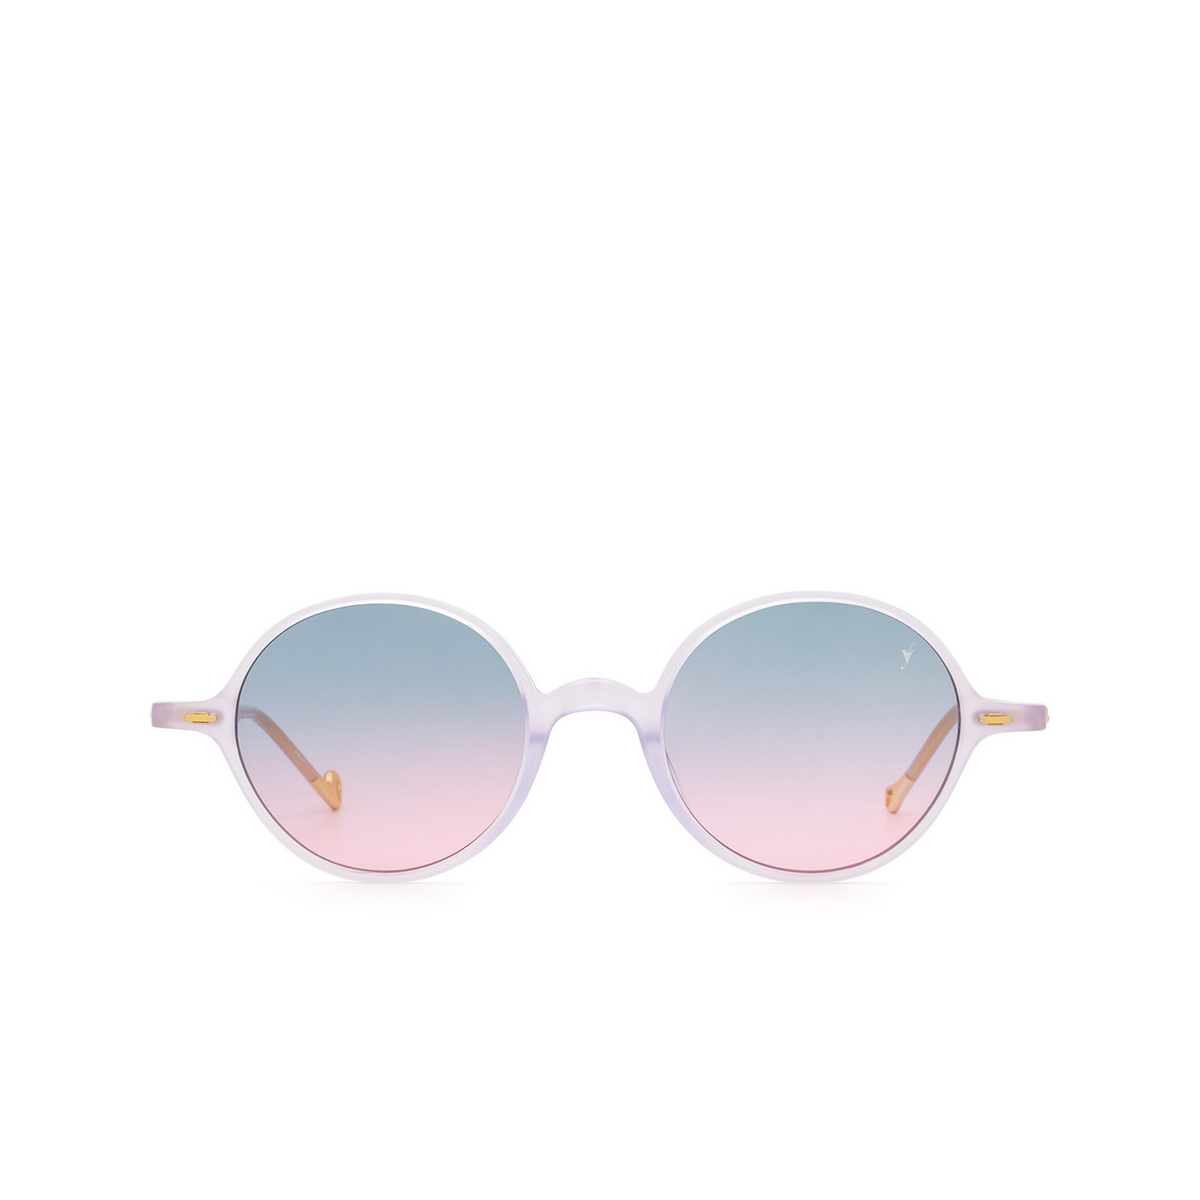 Eyepetizer® Round Sunglasses: Pallavicini color Lilac C.B/B-20 - front view.